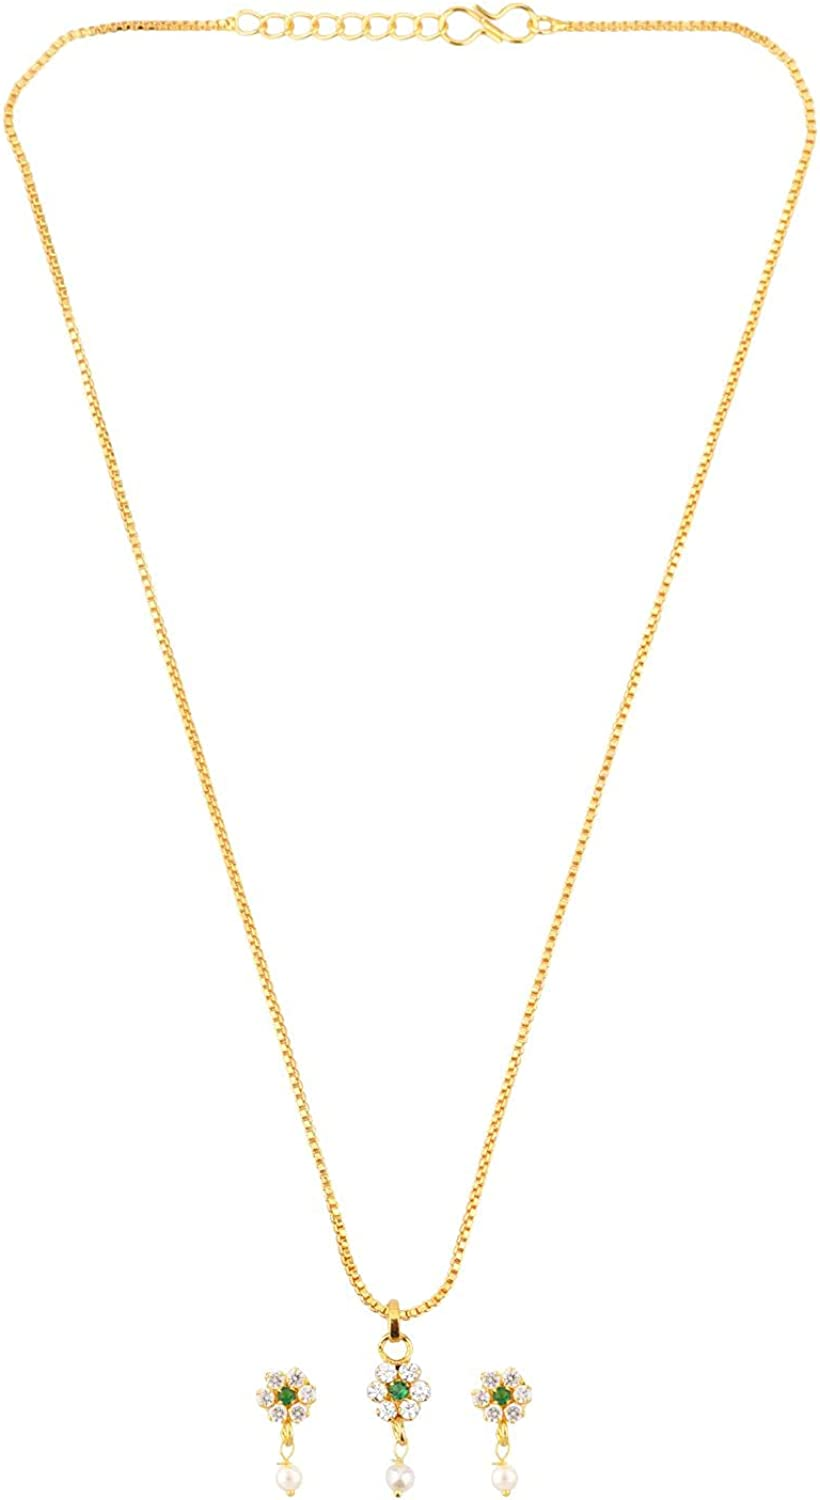 Efulgenz Cubic Zirconia CZ Floral Pendant Chain Necklace Earrings Jewelry Set Gift for Women Girls